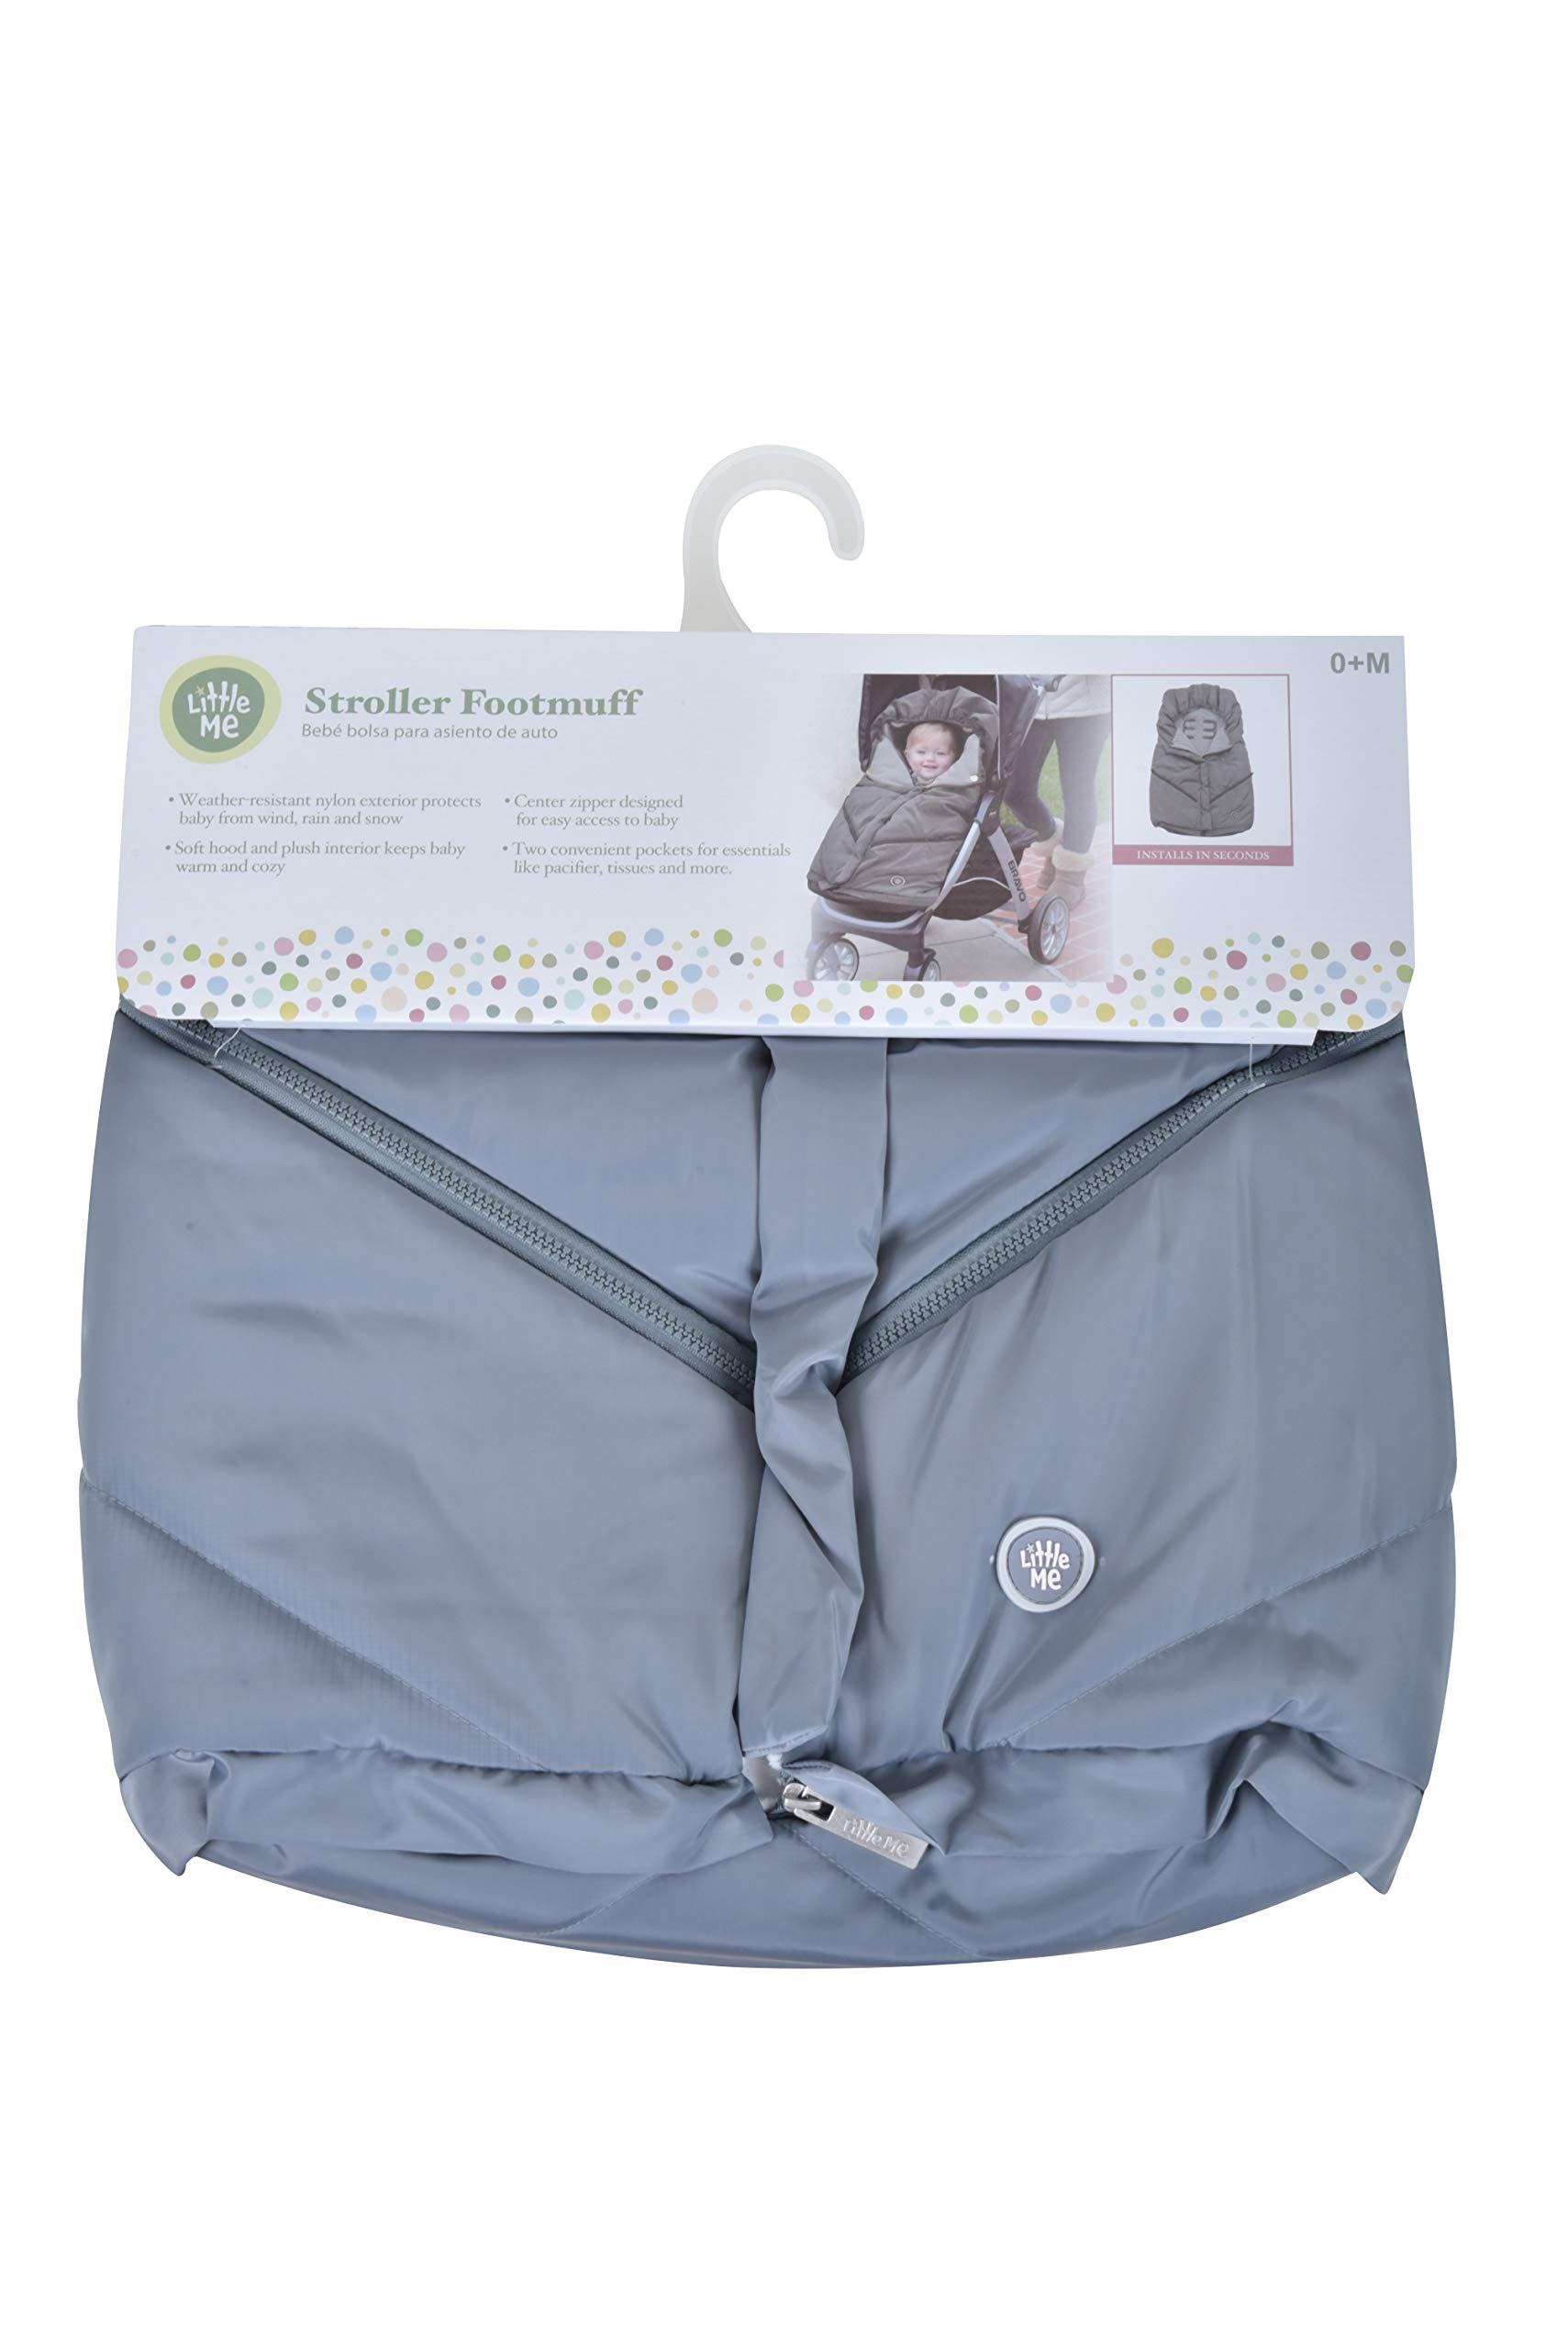 Little Me Footmuff for Strollers, Grey by Little Me (Image #3)